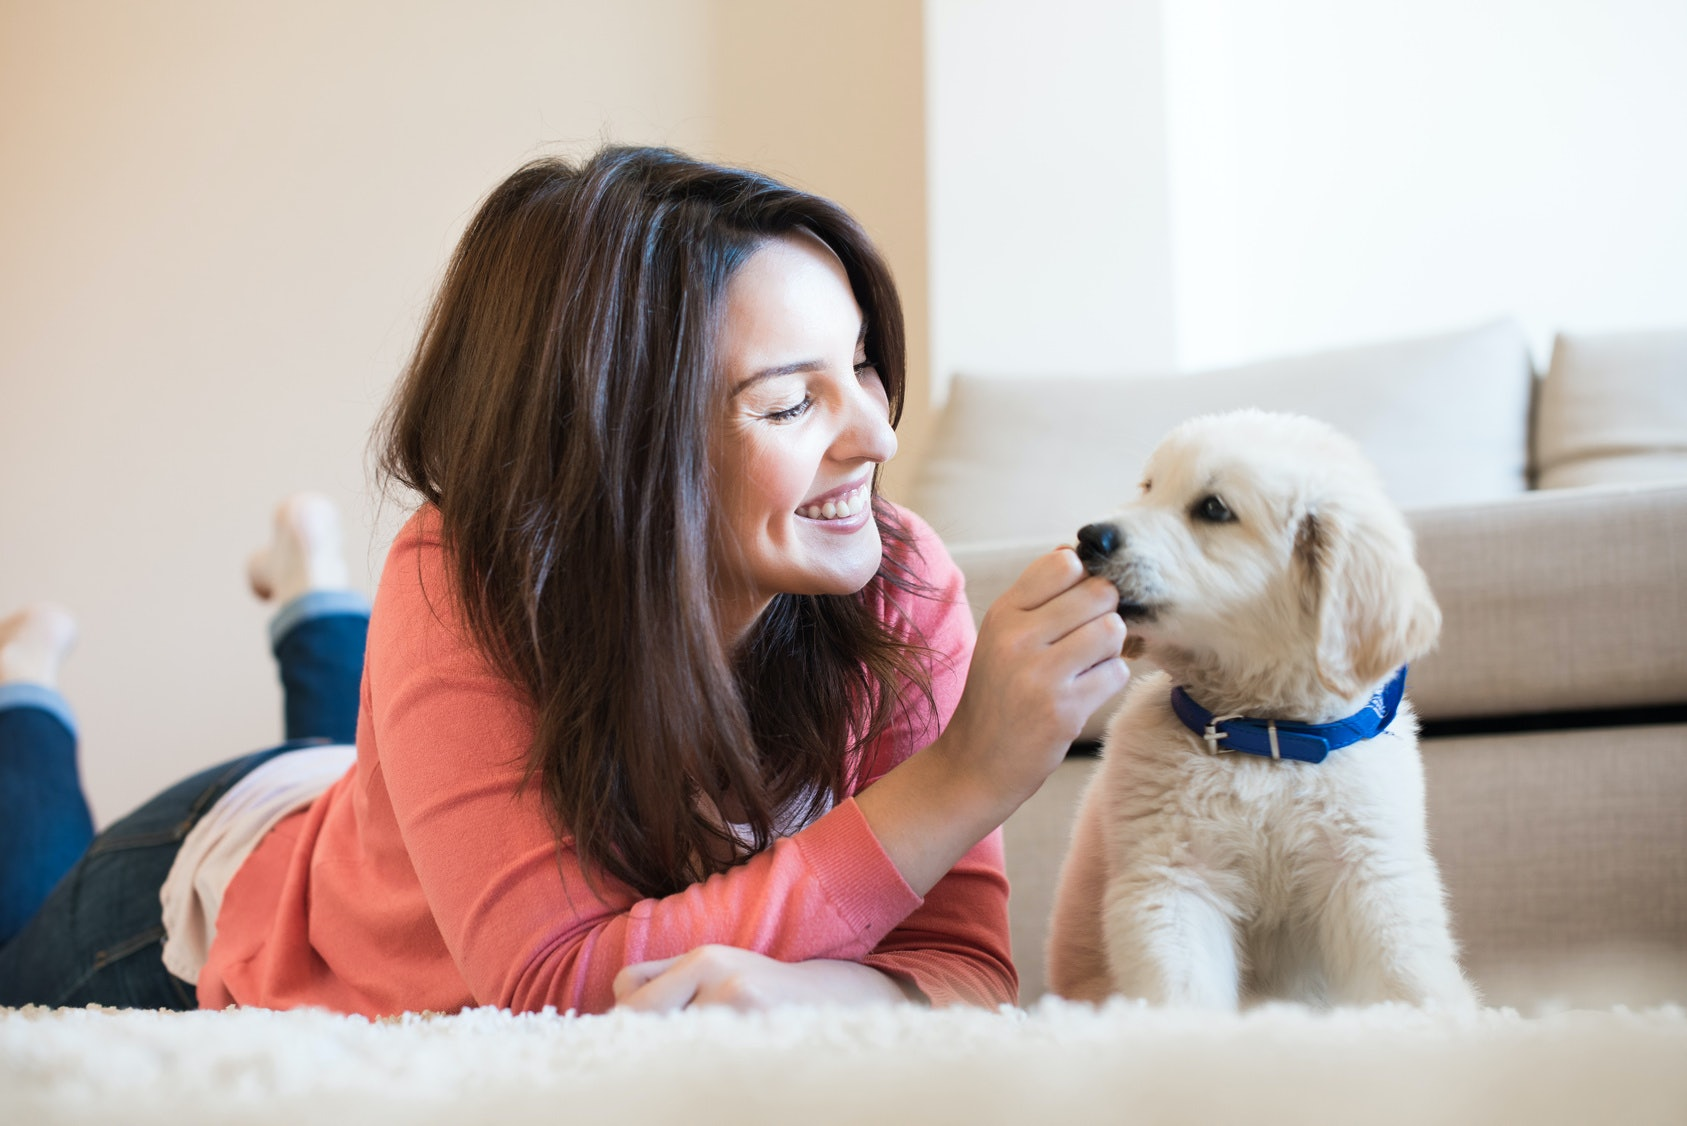 How Do Emotional Support Animals Help People? 7 Benefits Of ESAs